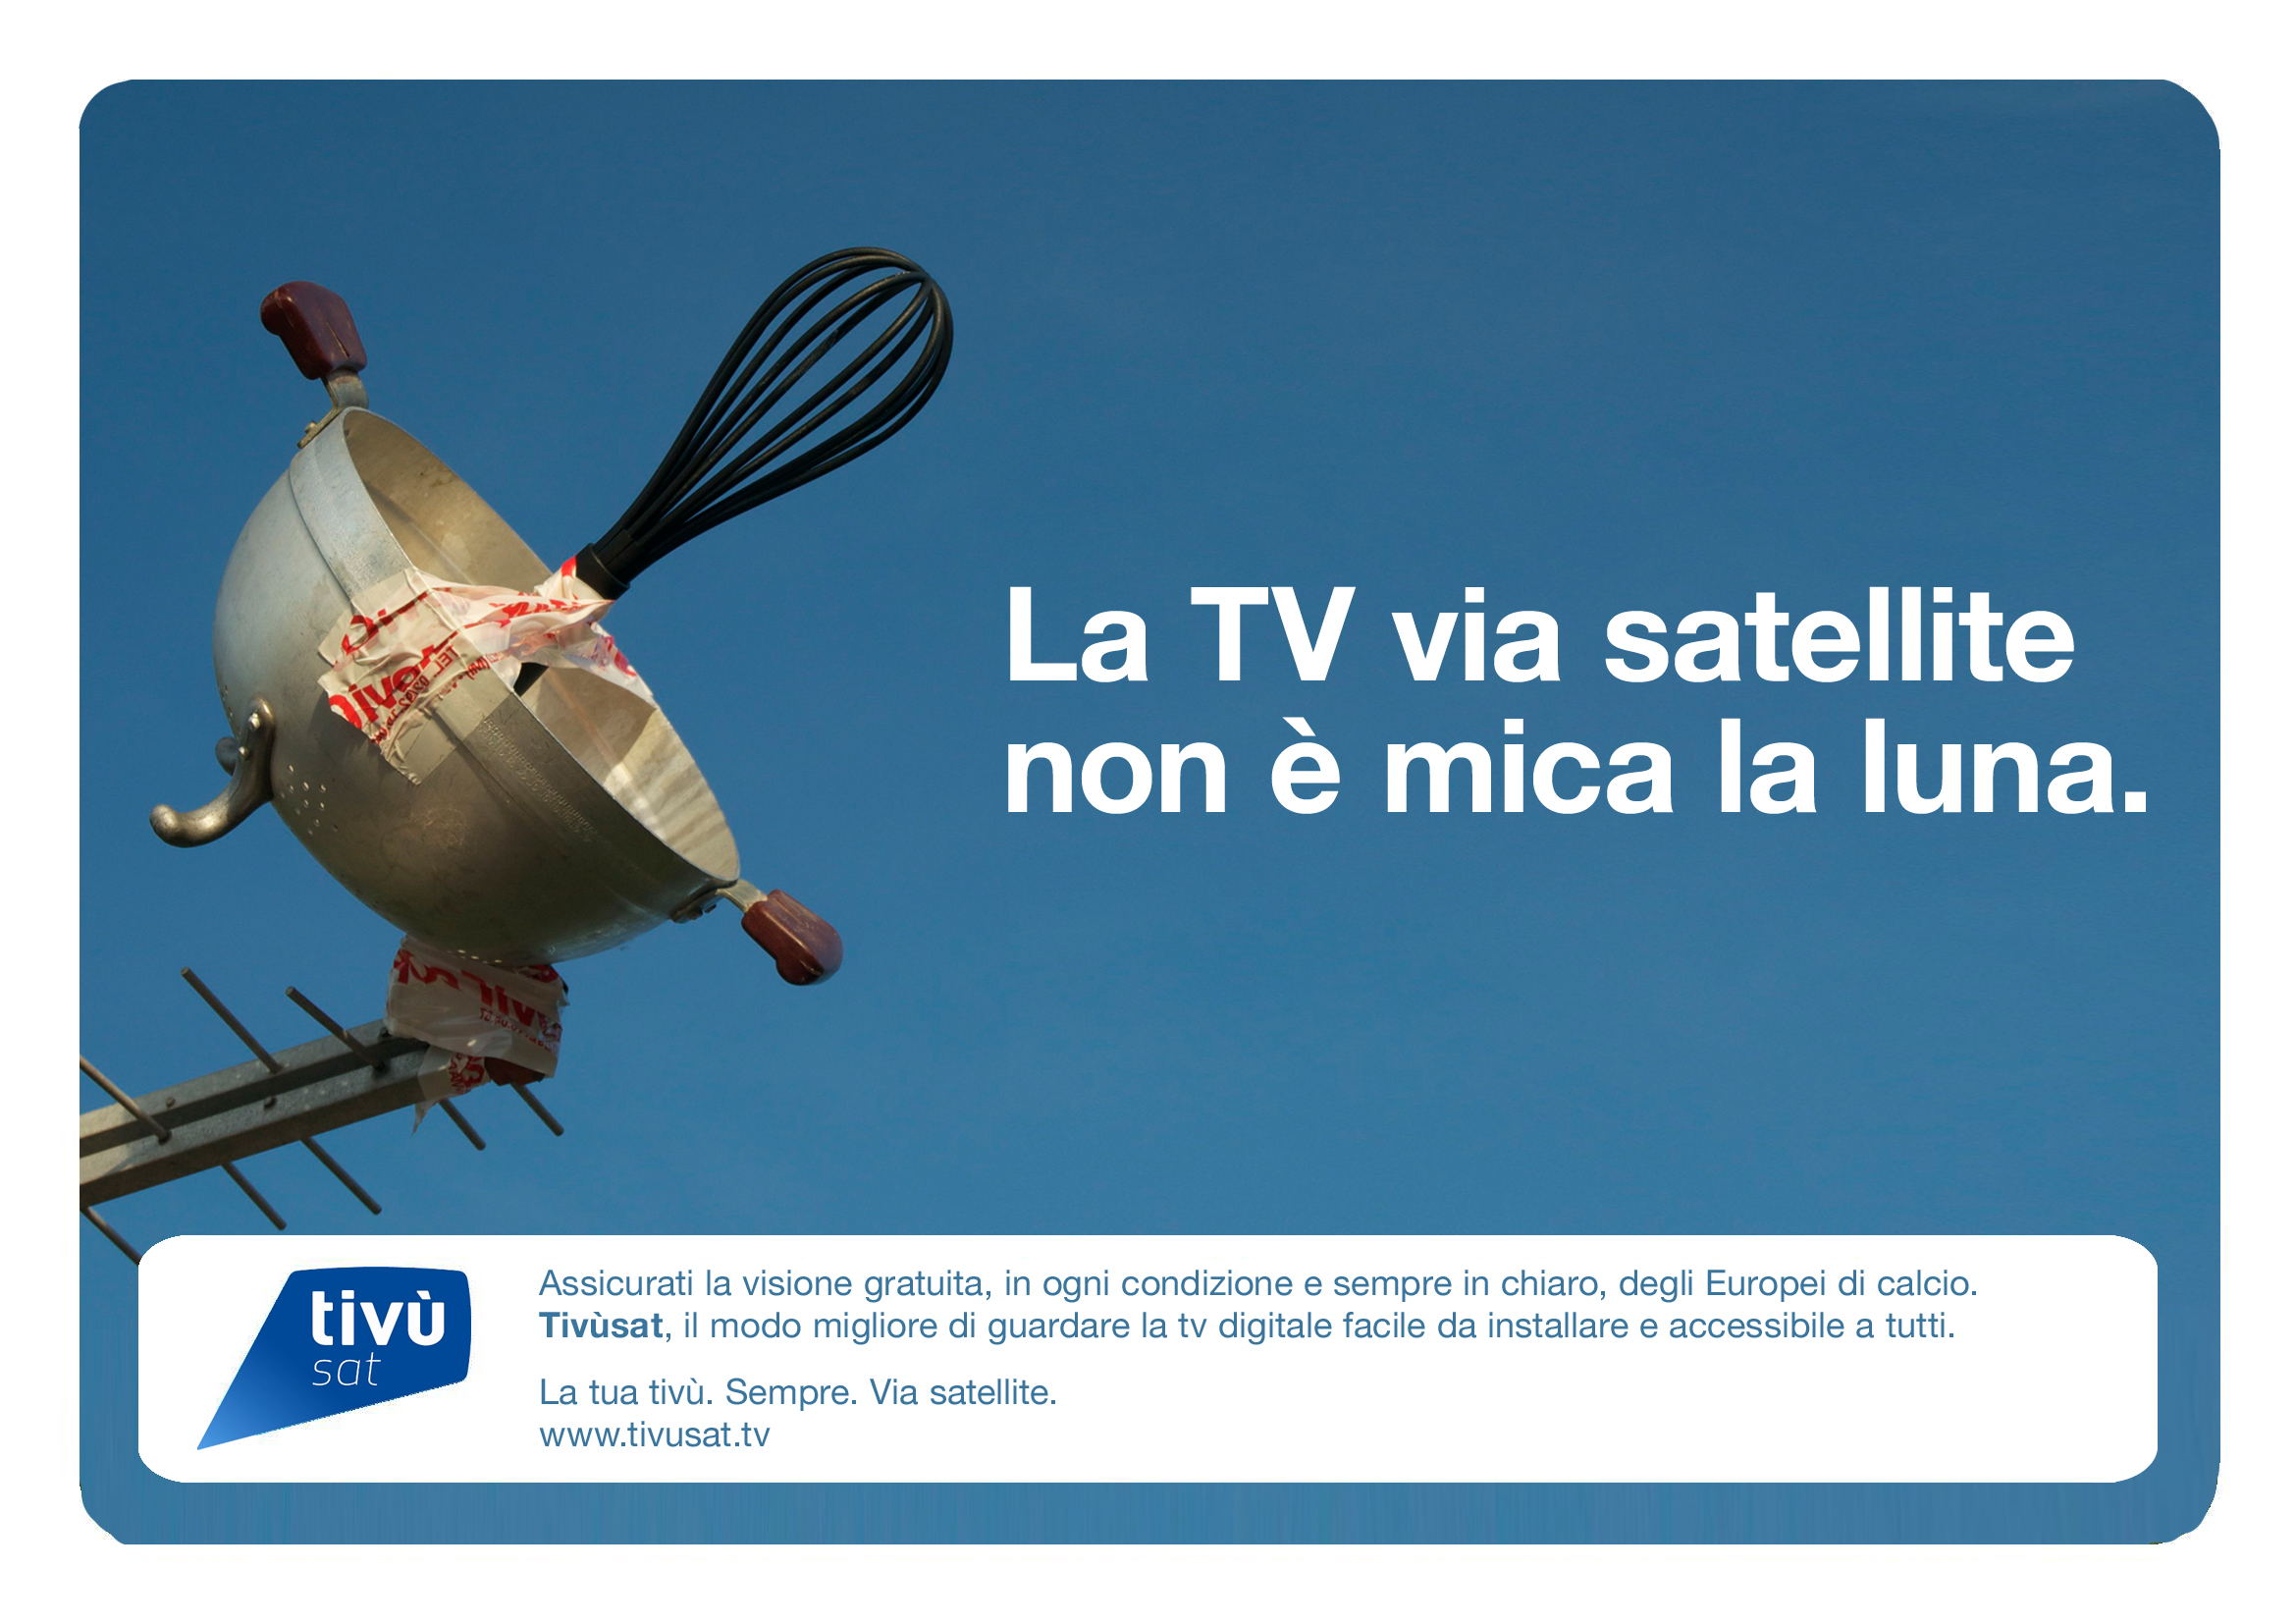 Advertising campaign for Tivùsat by Marco Carucci copywriter